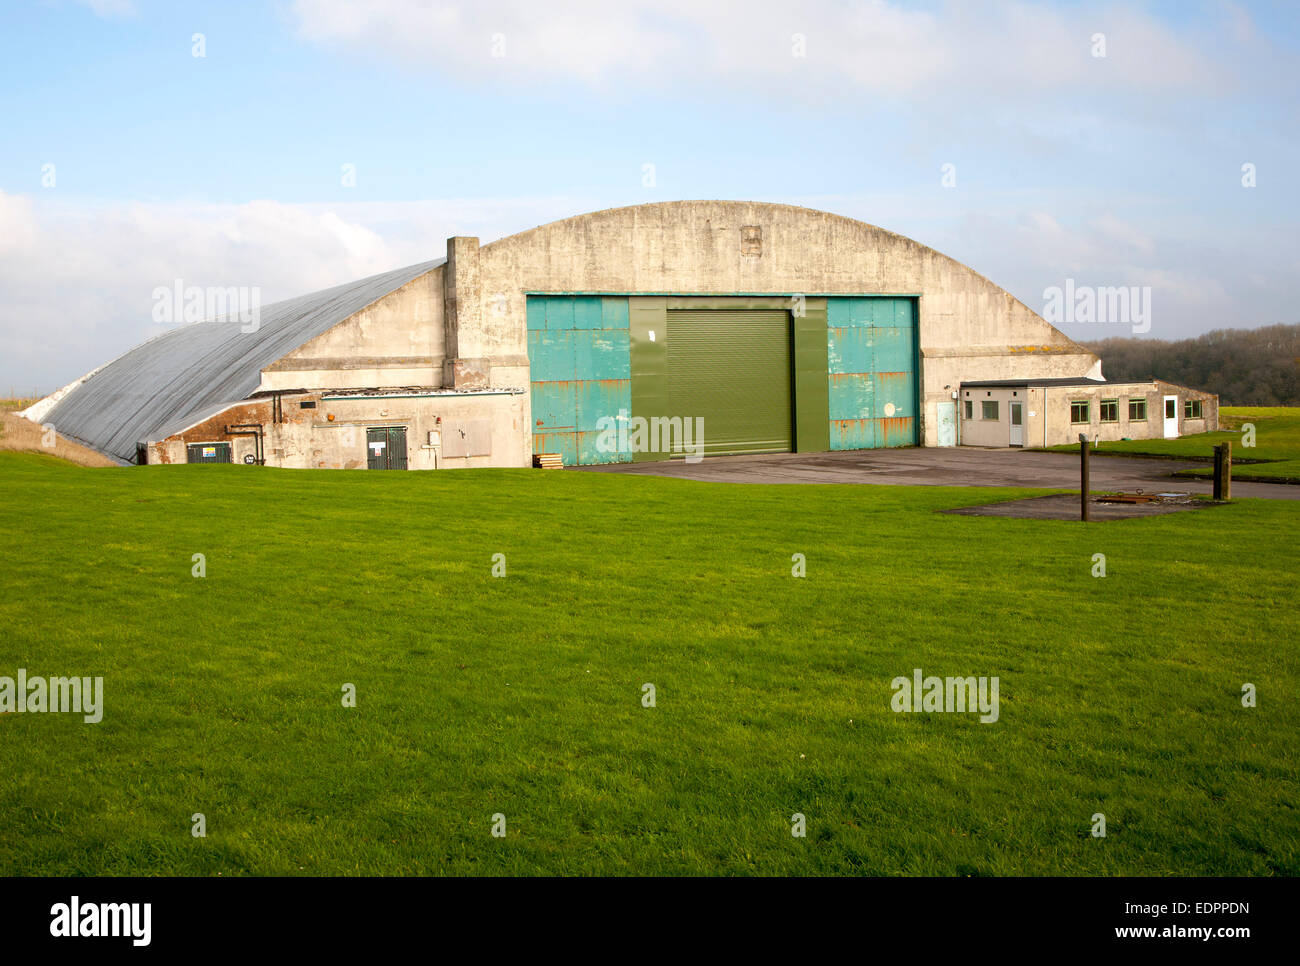 Aircraft hangar at former RAF Wroughton site, near Swindon, Wiltshire, England, UK used as a storage facility Stock Photo